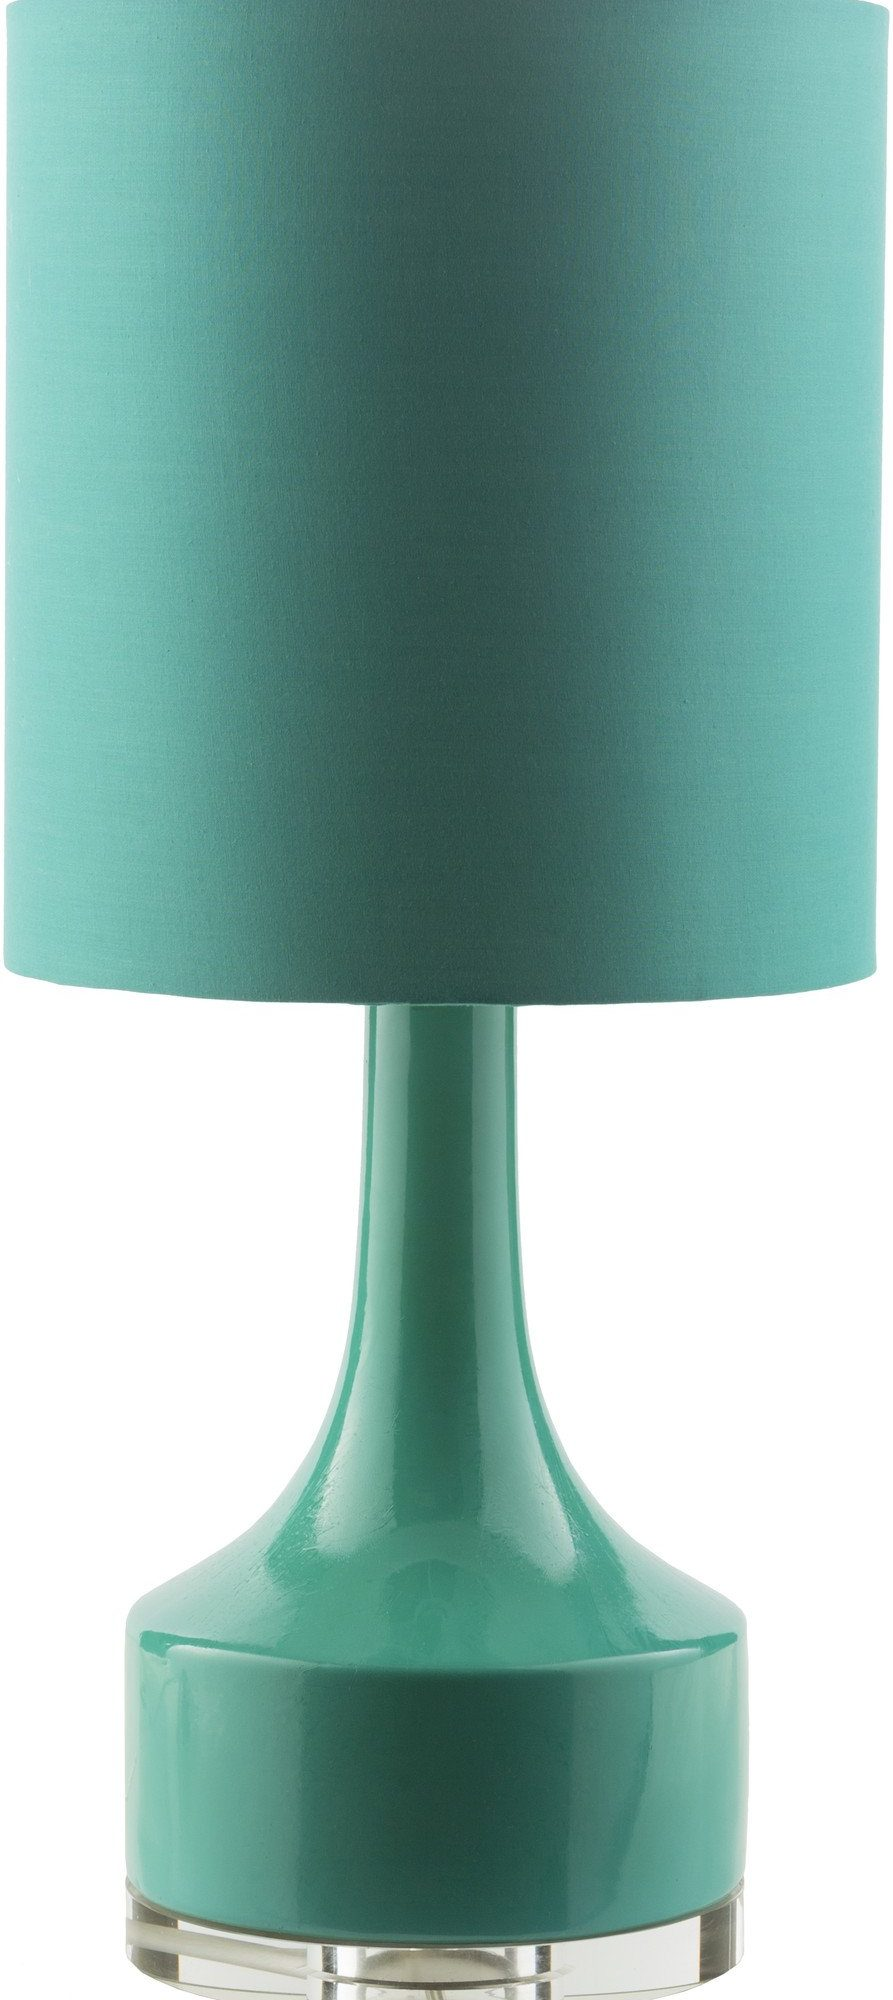 Farris Table Lamp in Green design by Surya